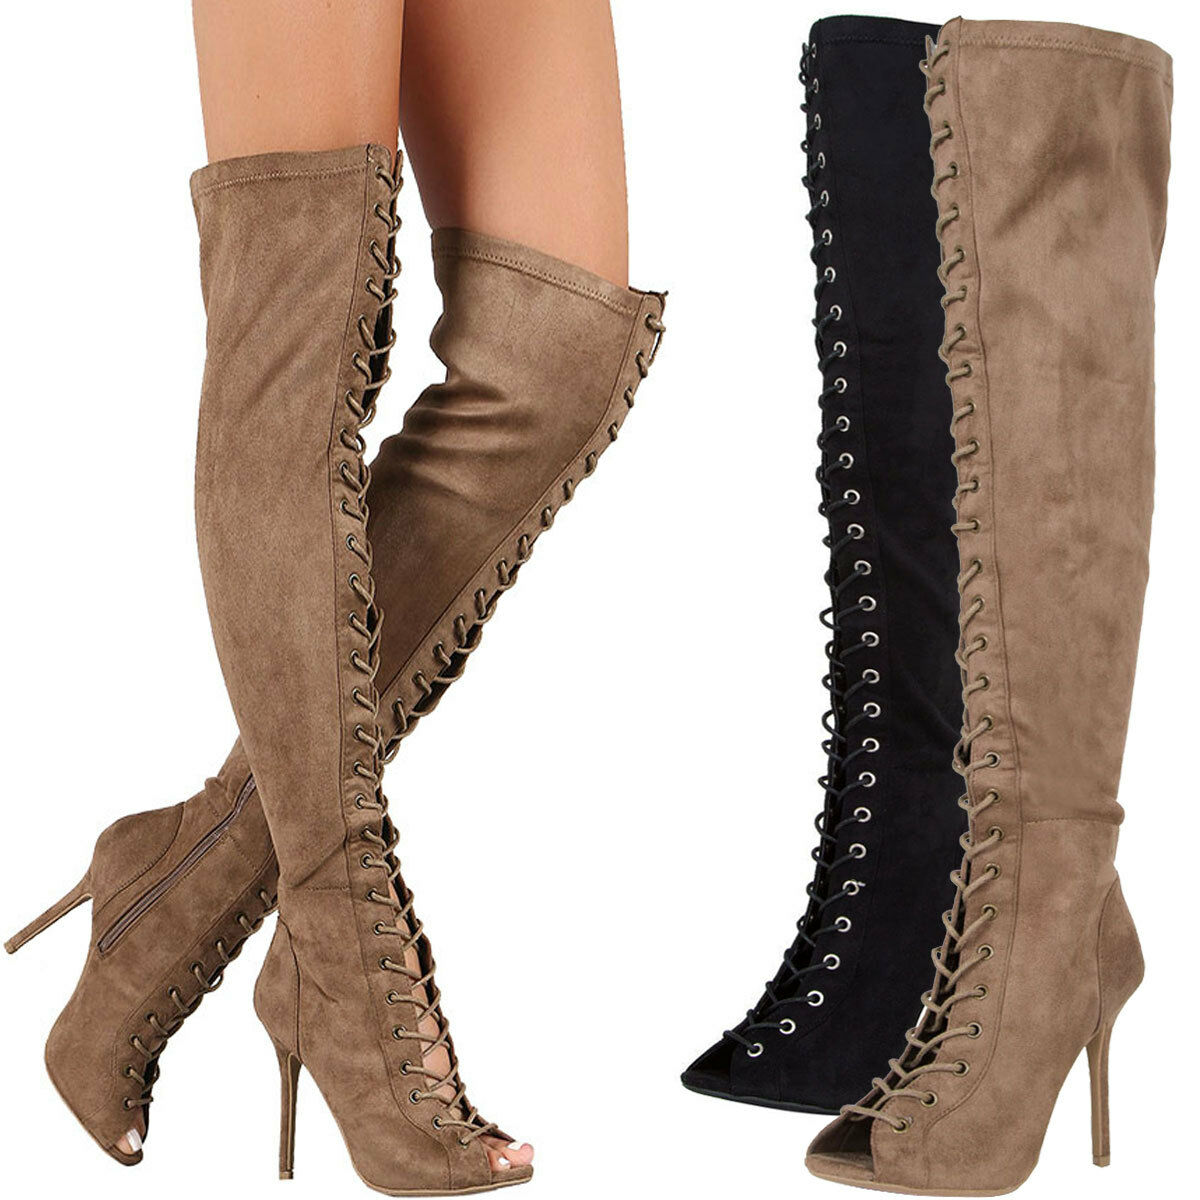 New Vegan Suede Peep Toe Lace Up Stiletto Heel Over The Knee High Gladiator Boot